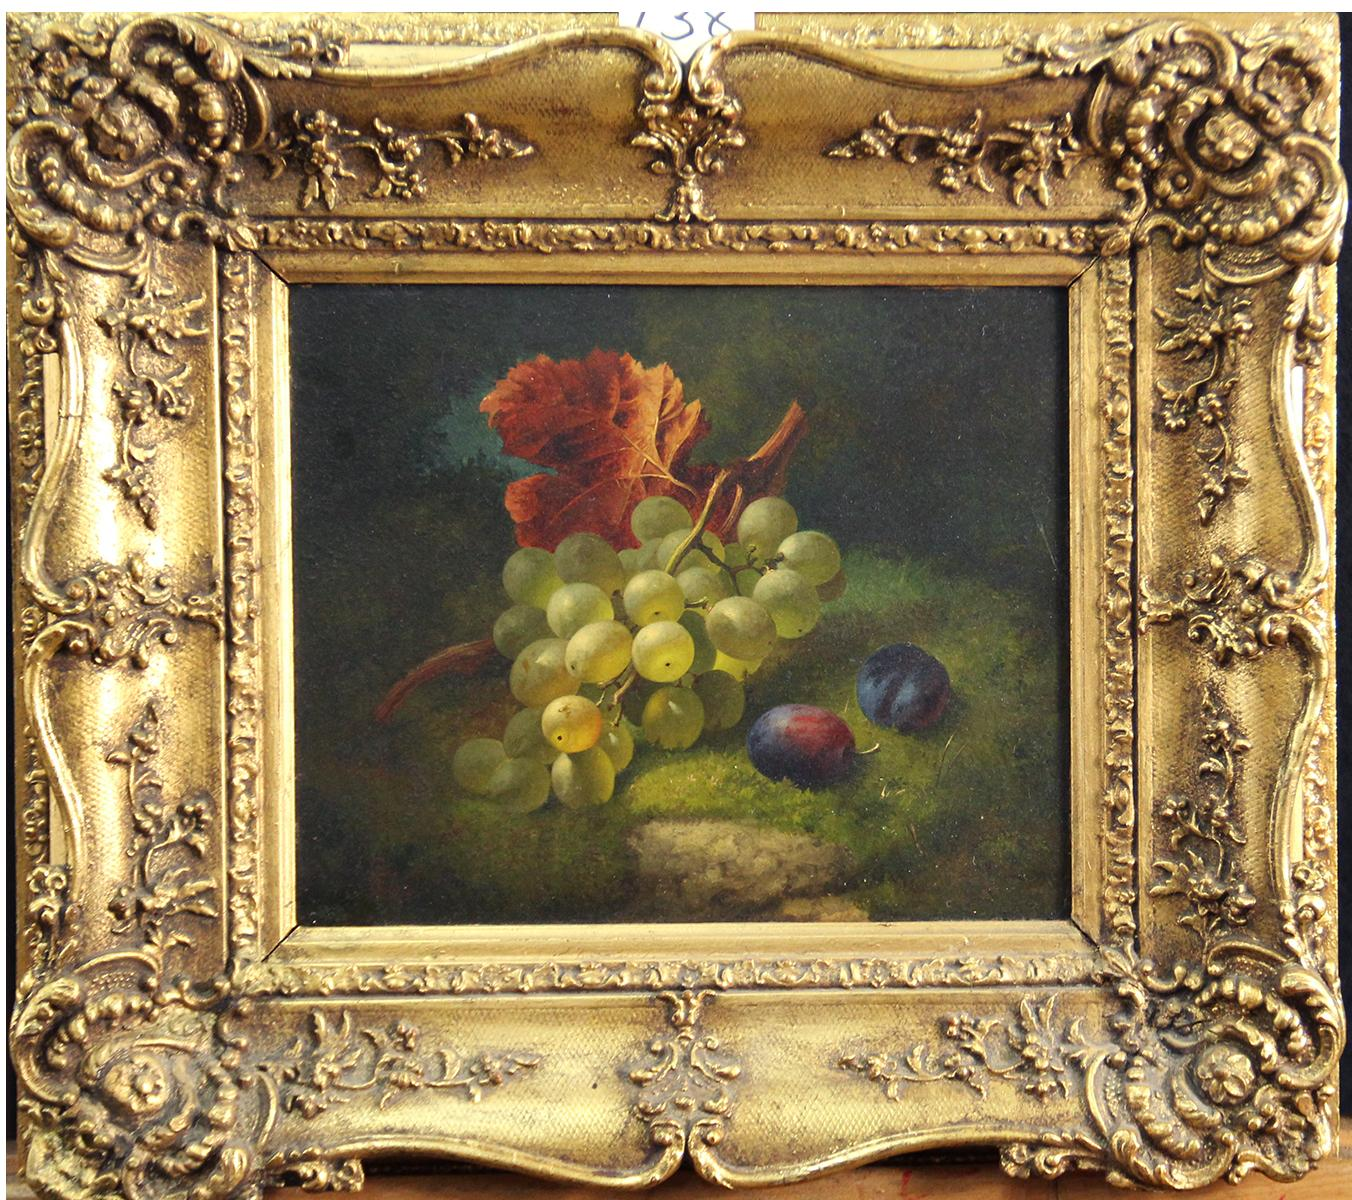 Still Life with Grapes and Plums, Oil on Board, 1866, Realist Art